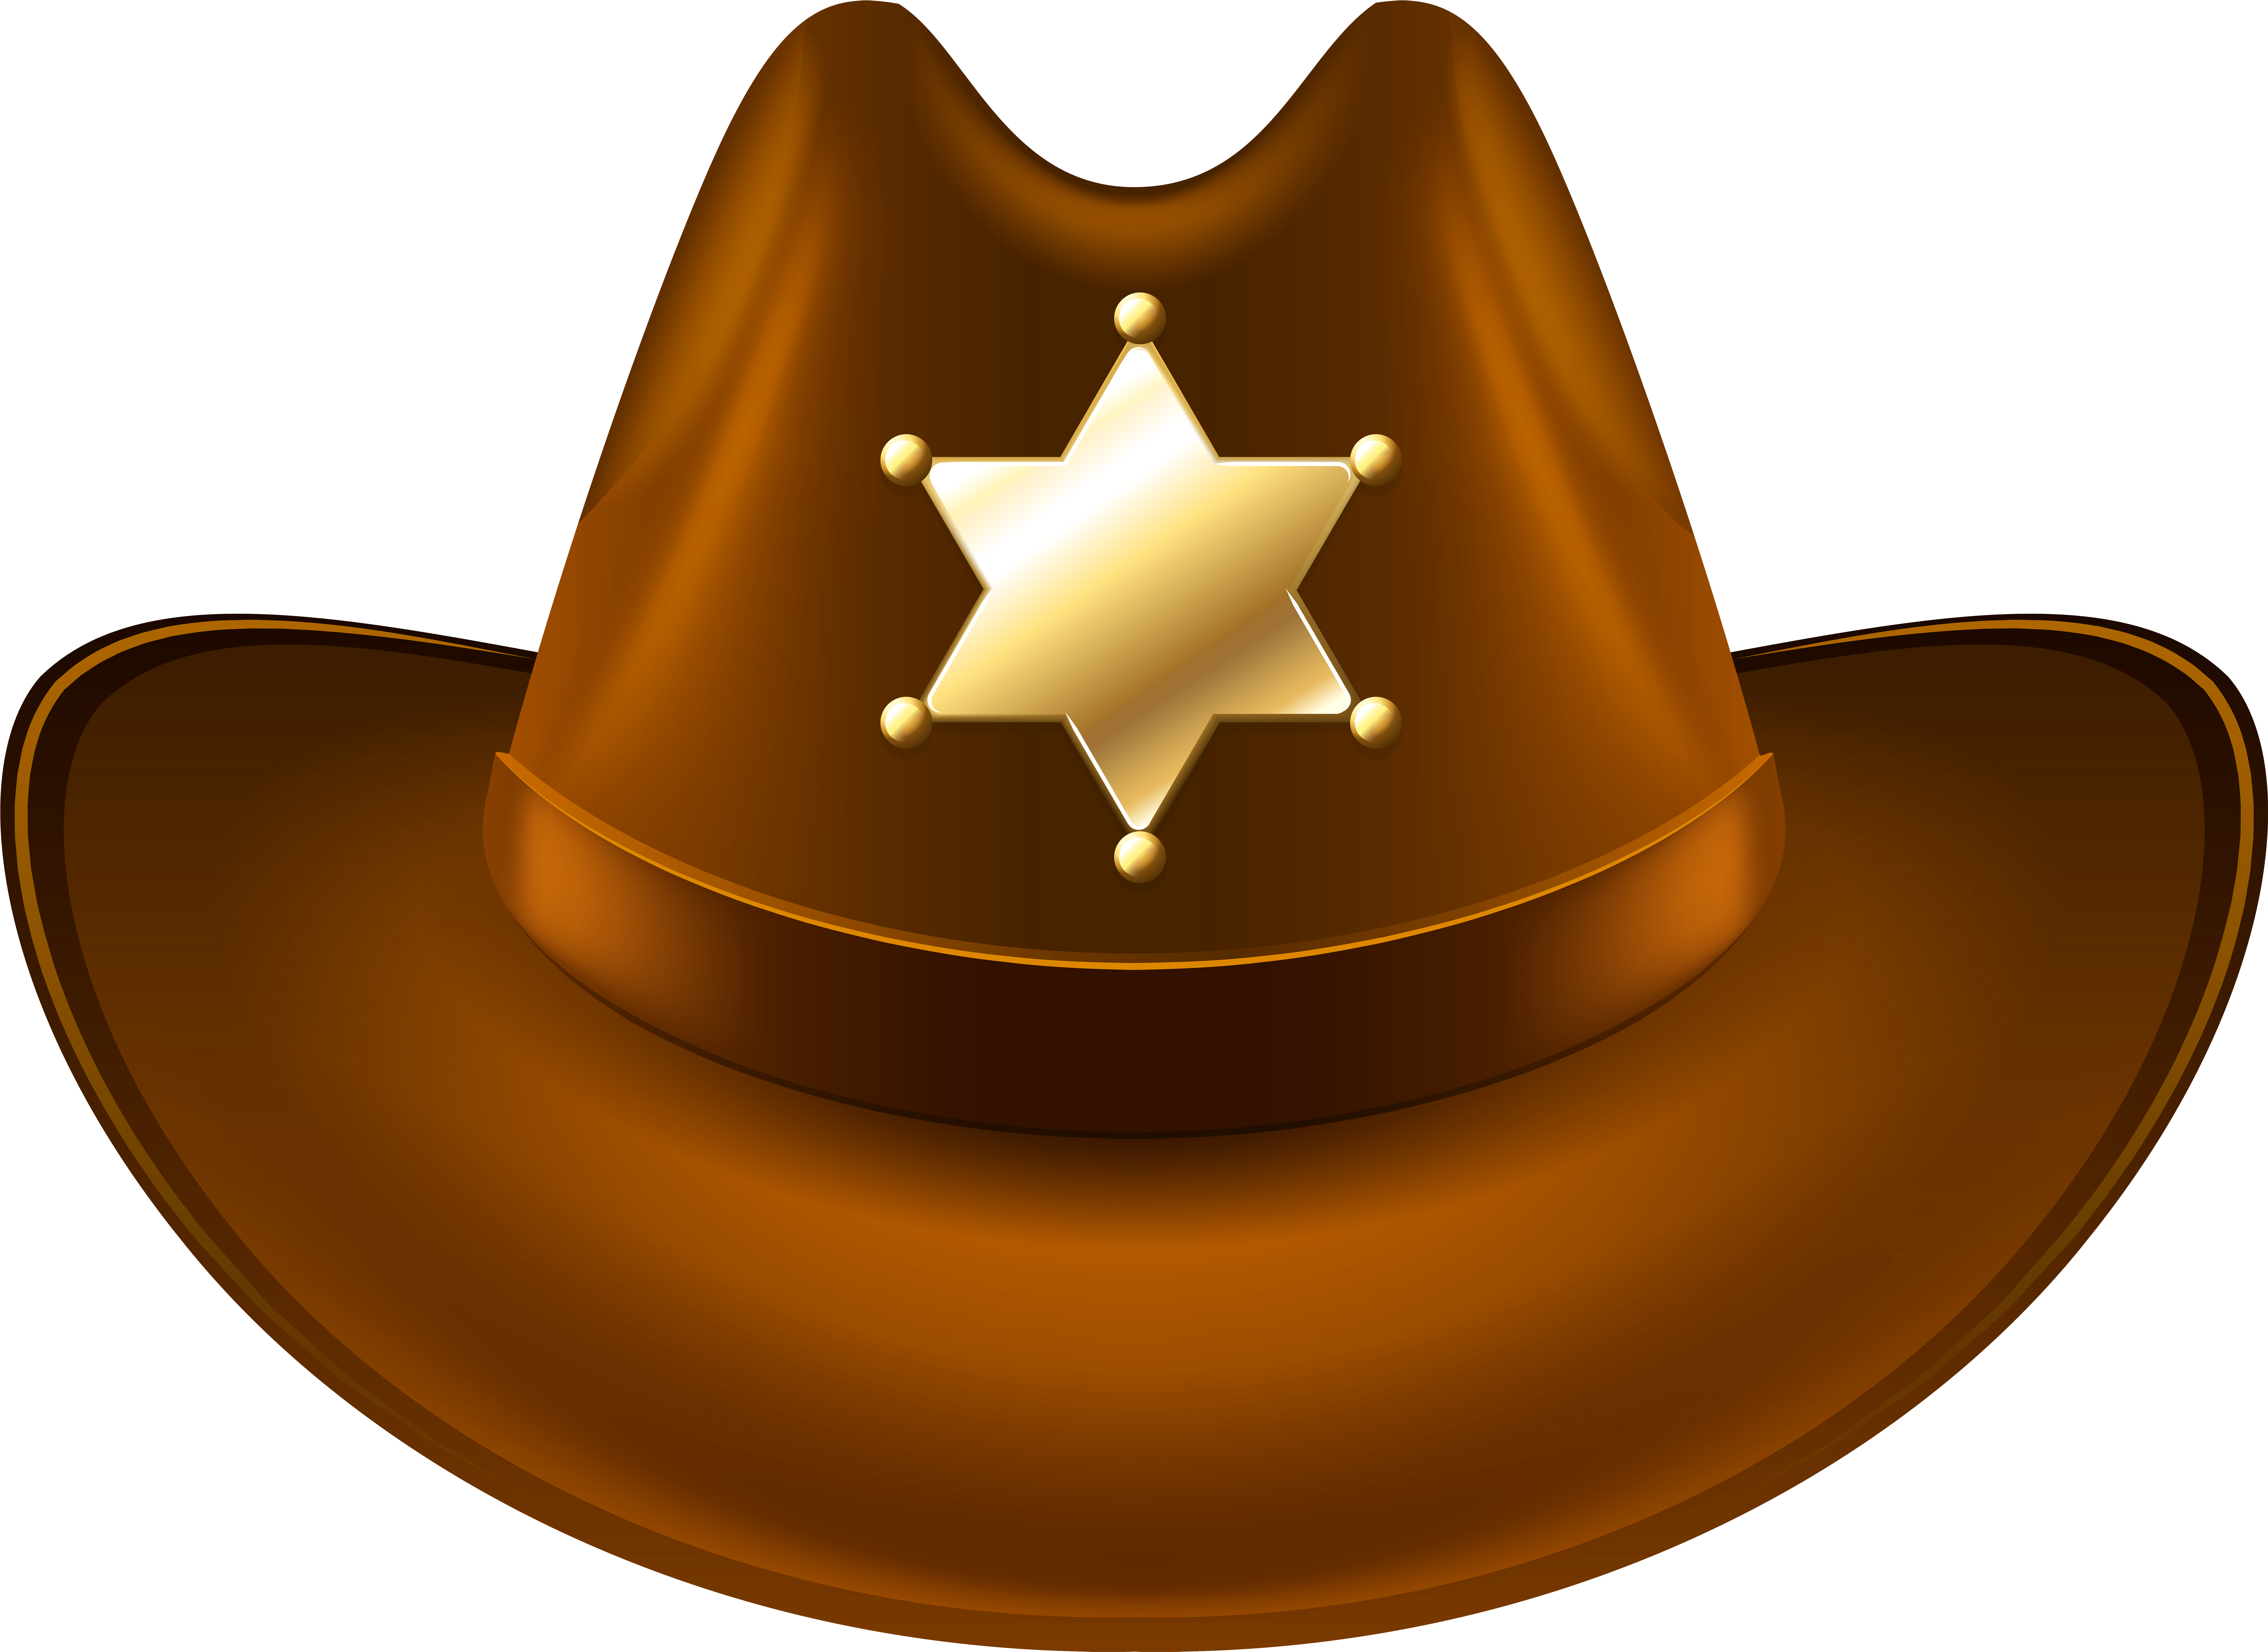 Cowboy Hat Clipart to download.